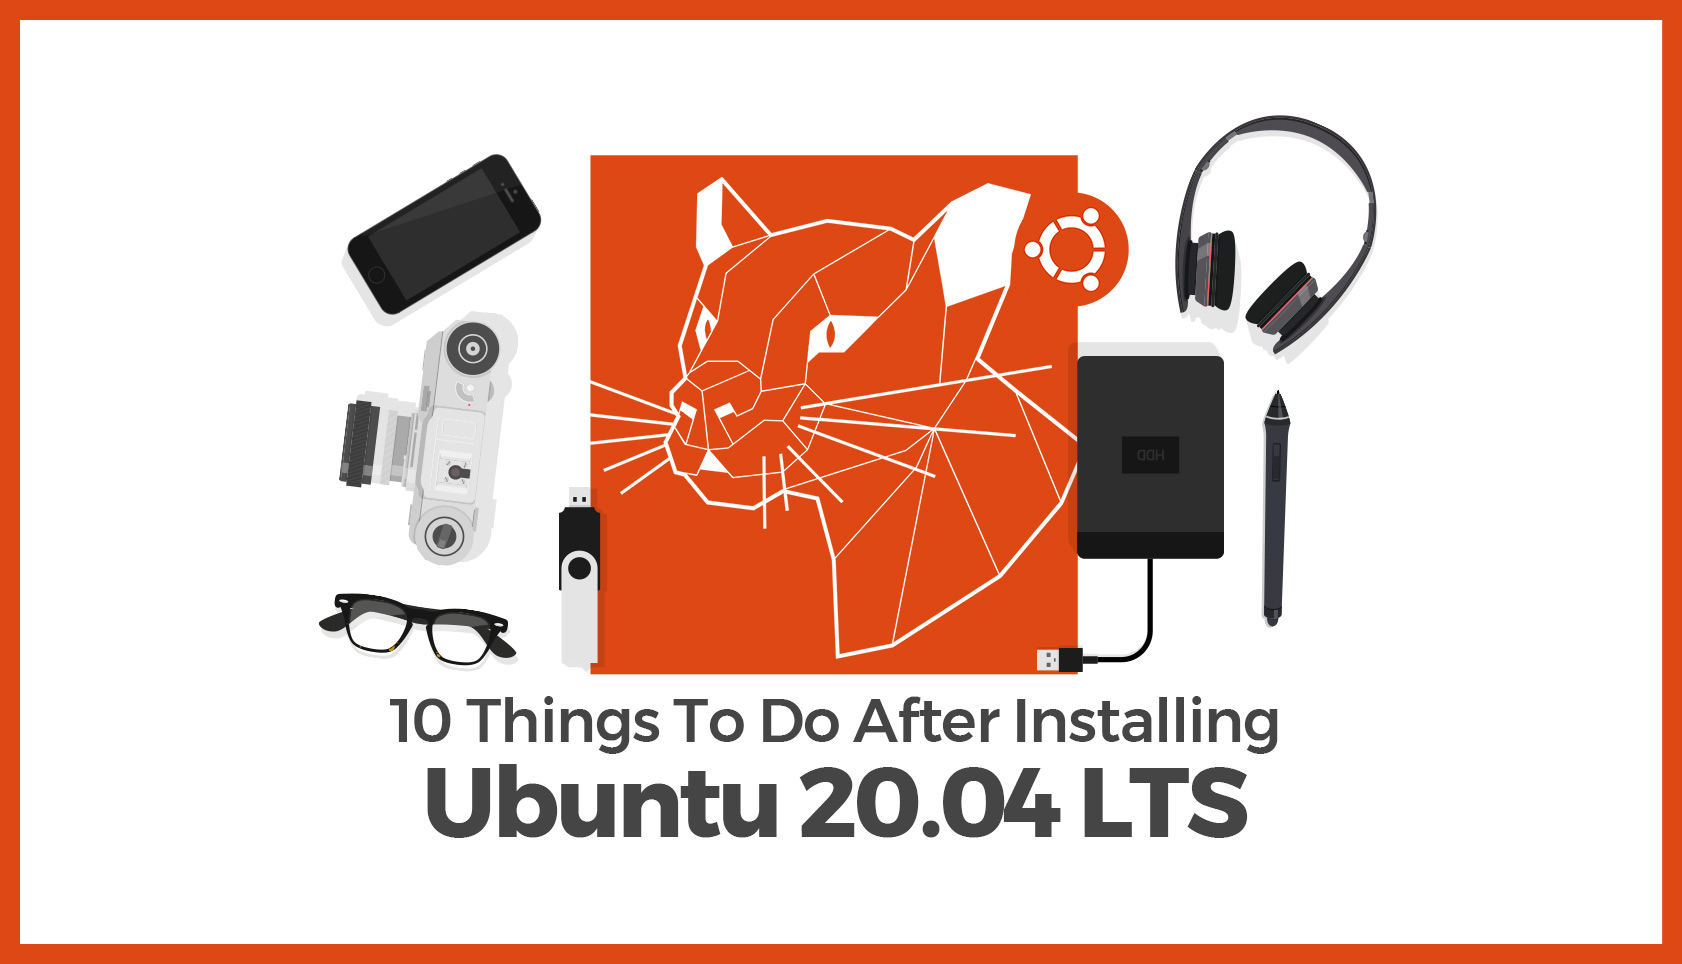 http://31.220.61.170/wp-content/uploads/2020/04/10-Things-To-Do-After-Installing-Ubuntu-20.04-LTS--.jpg-.jpg